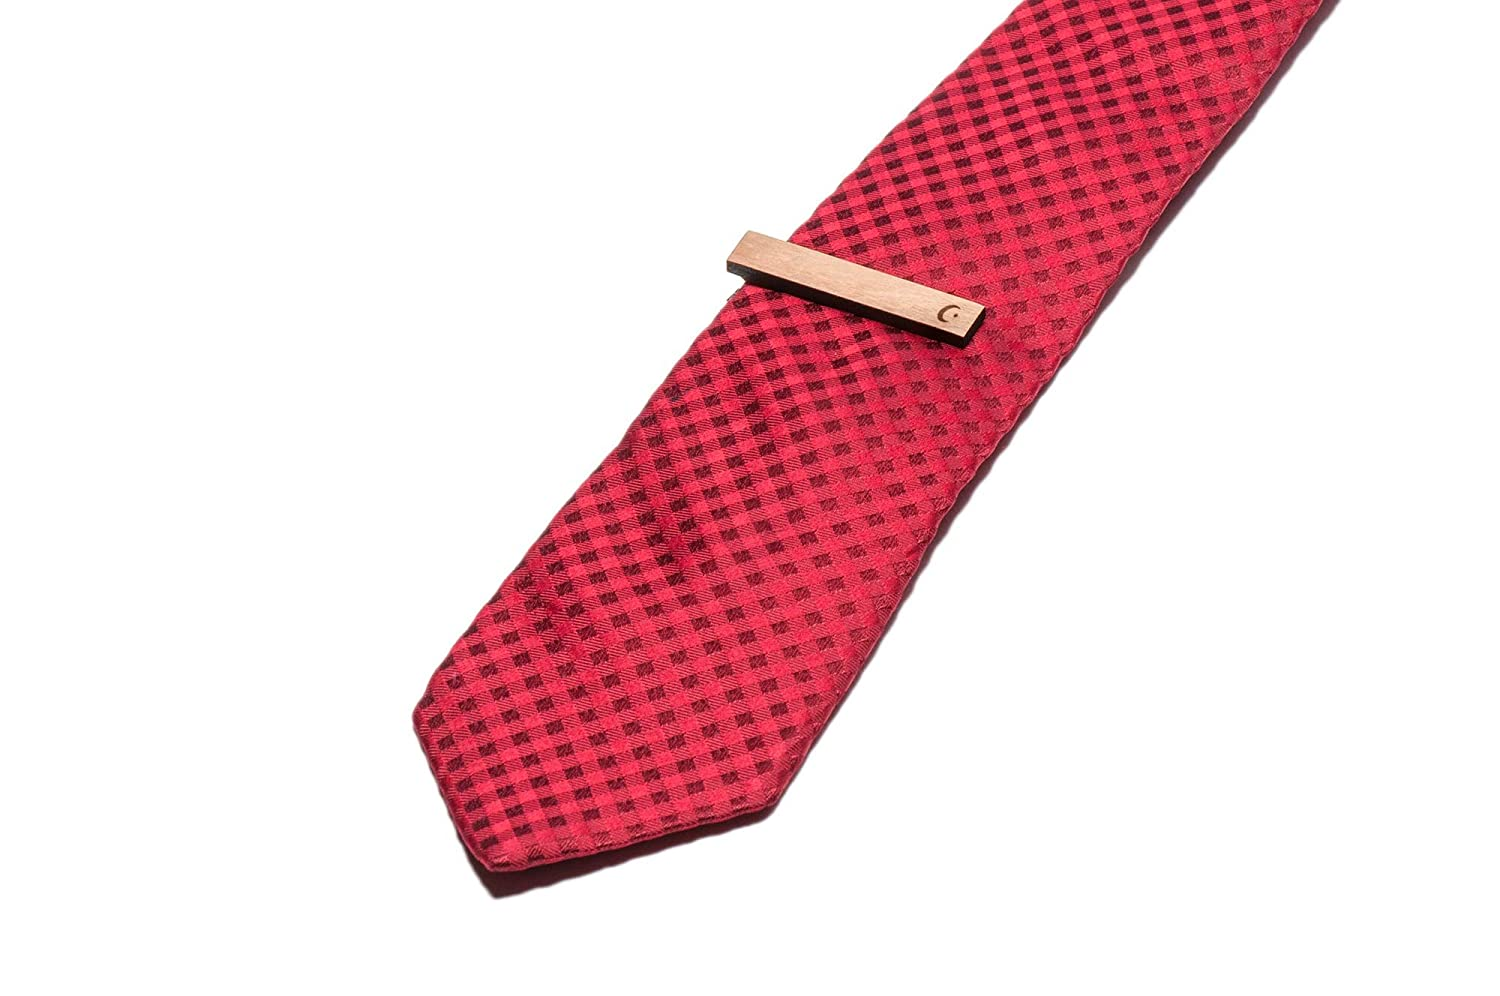 Wooden Accessories Company Wooden Tie Clips with Laser Engraved Islamic Design Cherry Wood Tie Bar Engraved in The USA